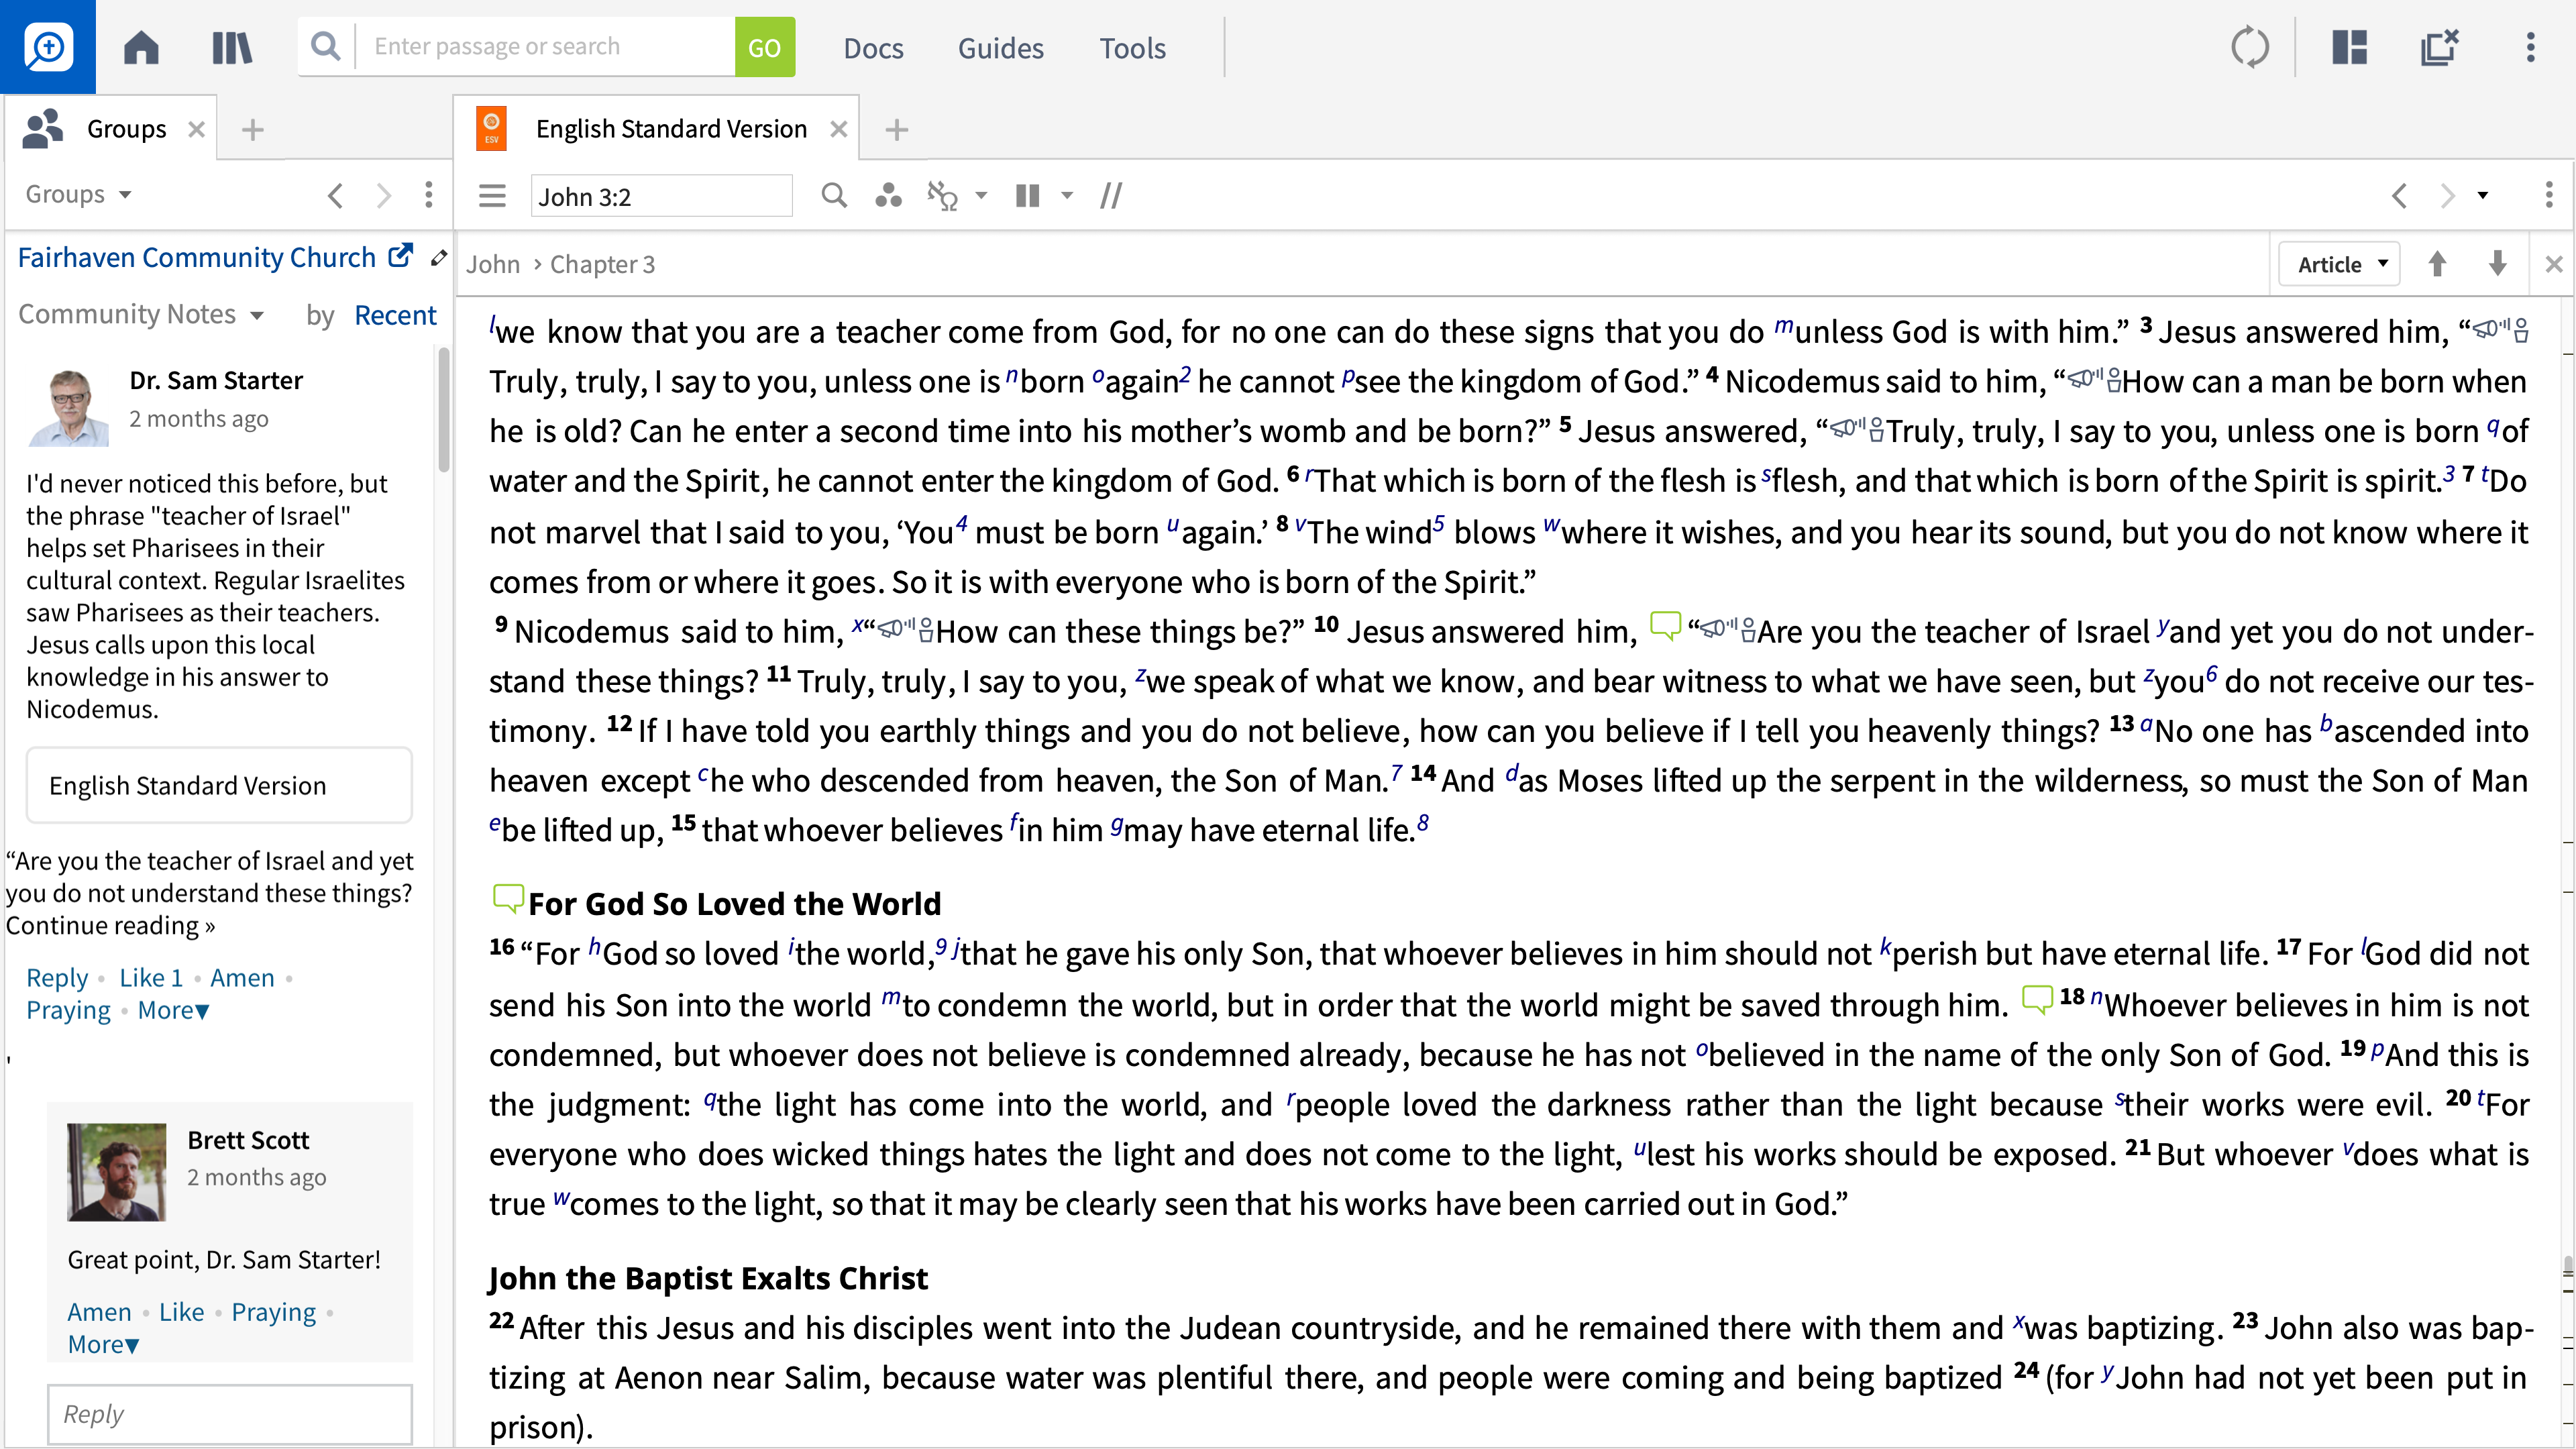 Logos is showing Community Notes from others in common Faithlife groups.